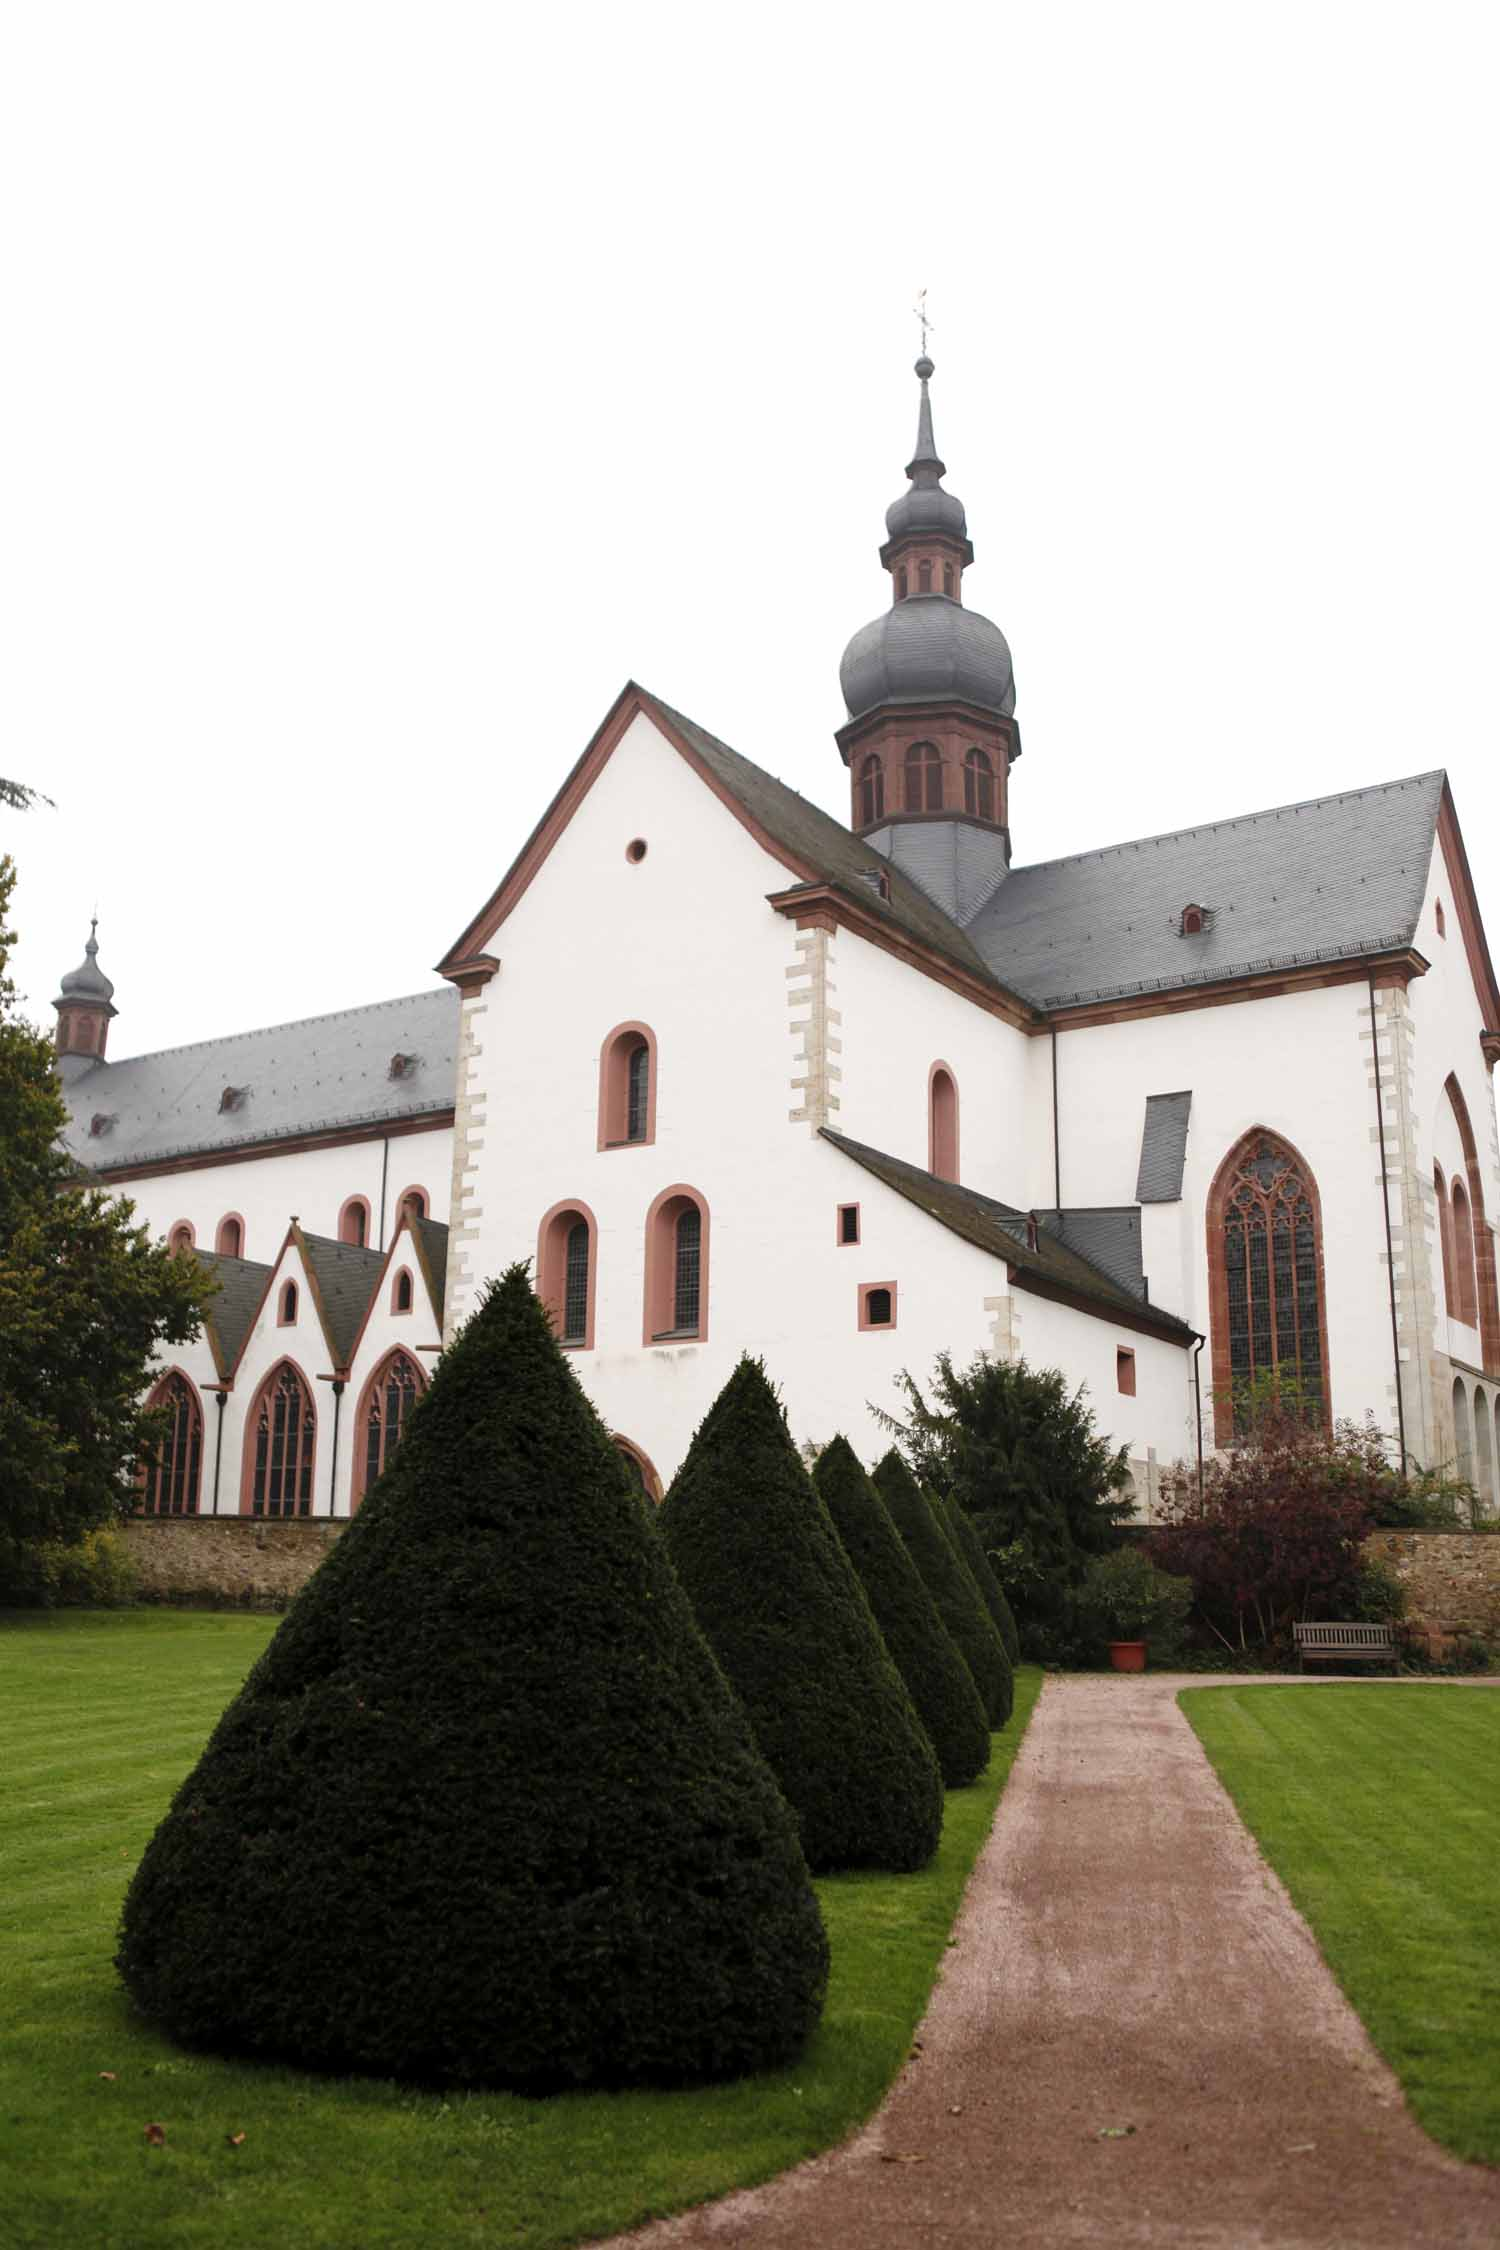 Kloster Eberbach in Rheingau Germany, location of the wedding style shoot by Flora Nova Design, Seattle